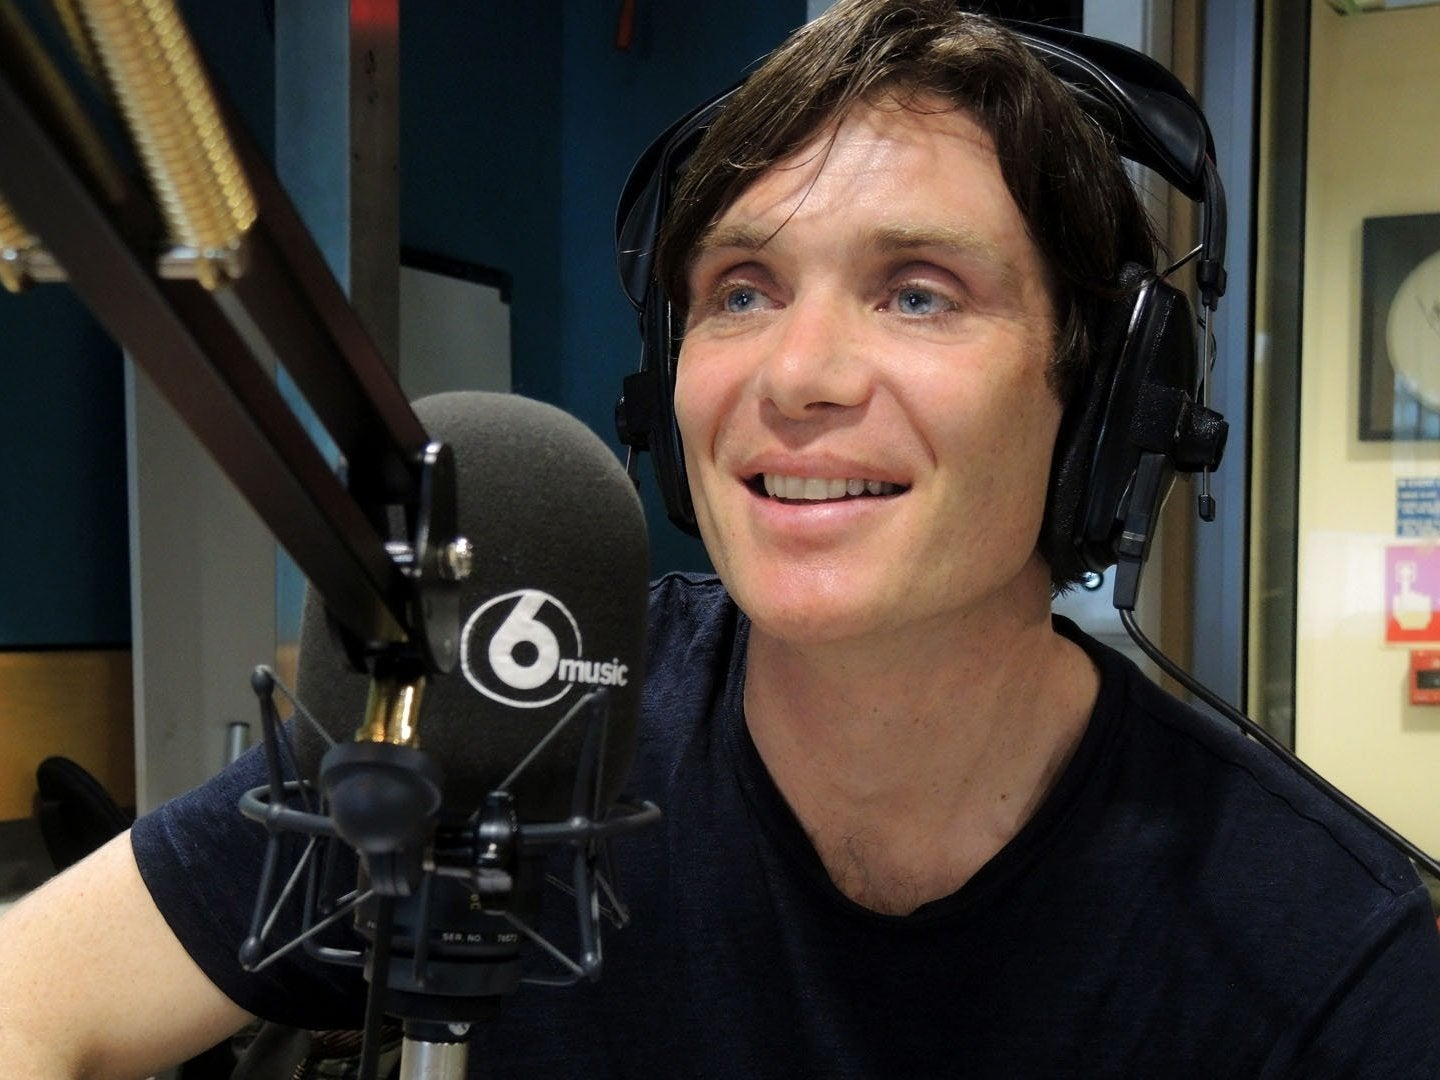 Peaky Blinders star Cillian Murphy to stand in for Guy Garvey on BBC Radio 6 Music